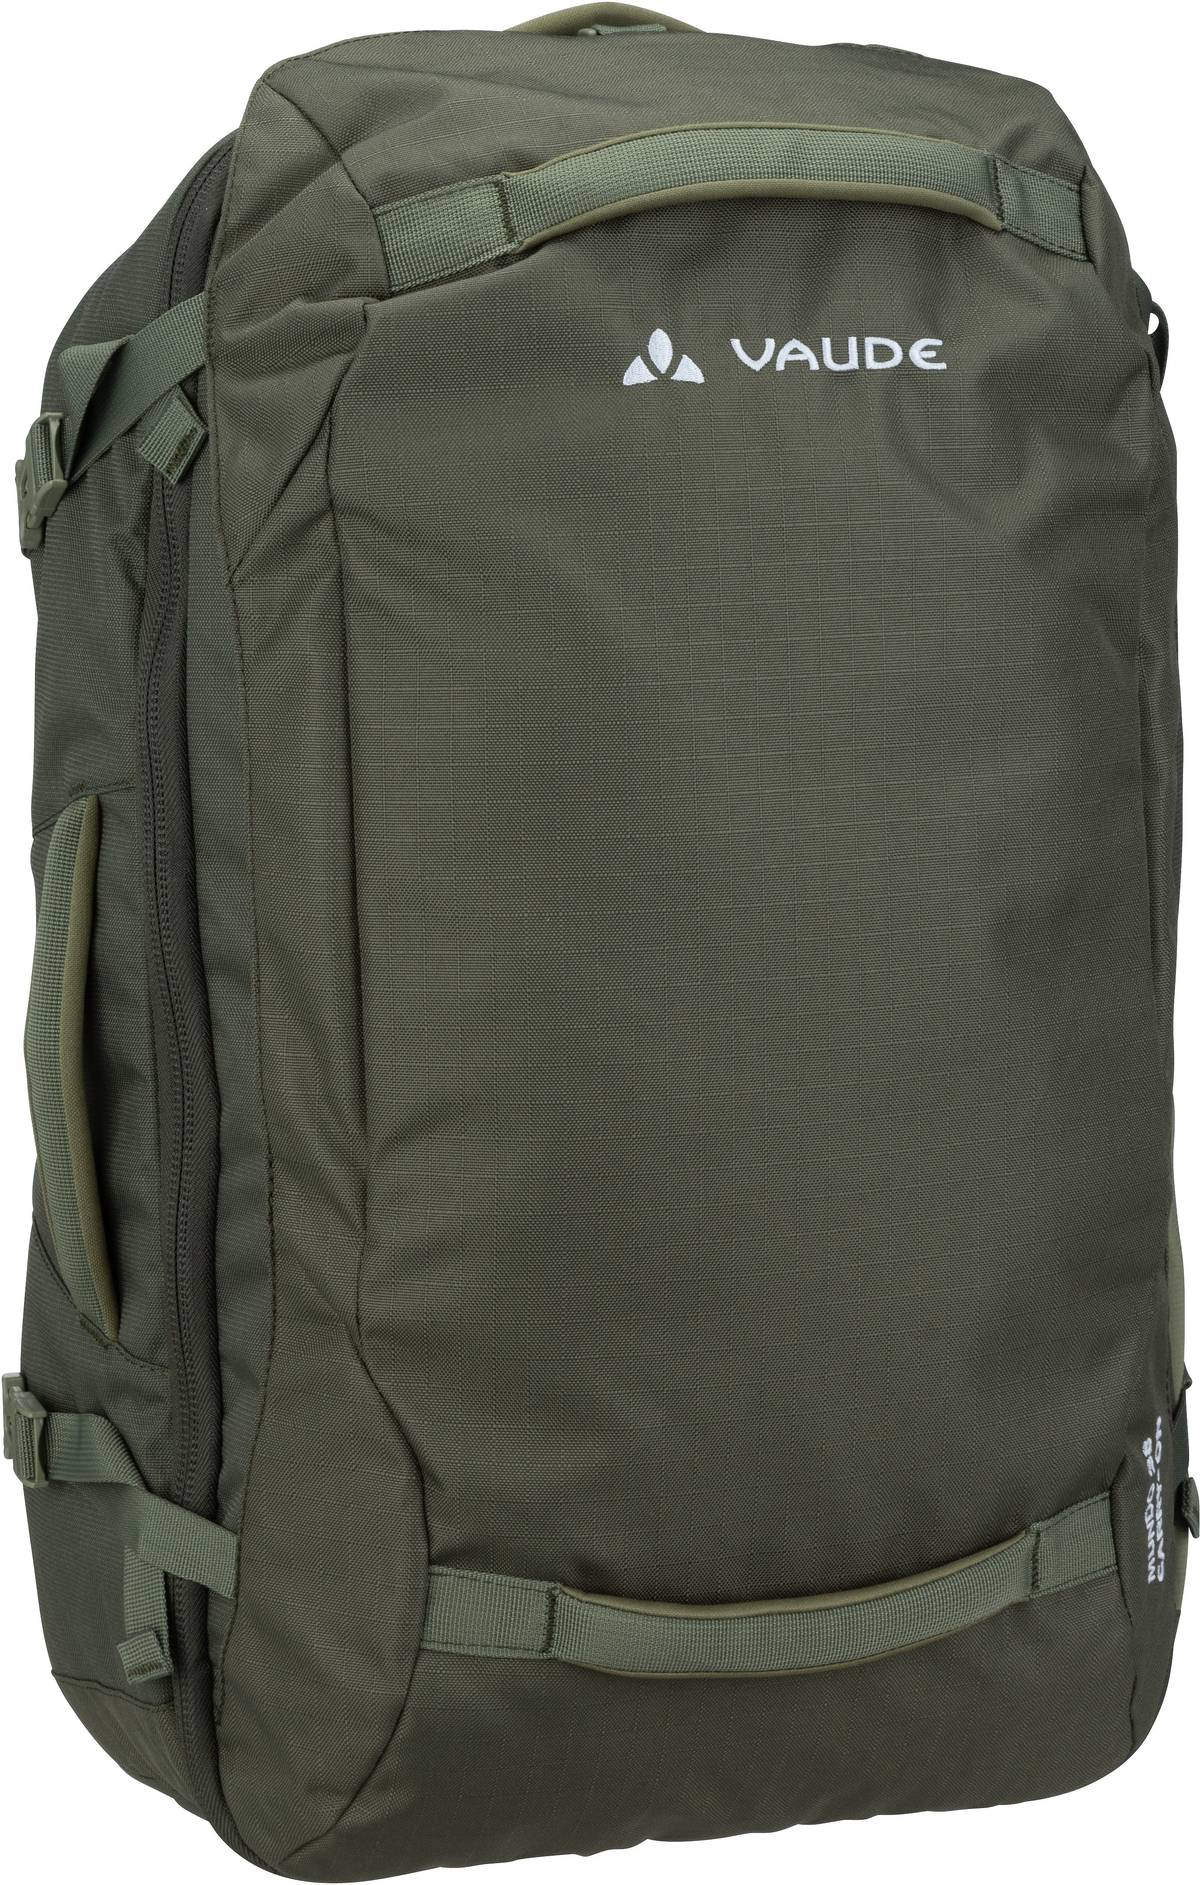 Rucksack / Daypack Mundo Carry-On 38 Olive (38 Liter)